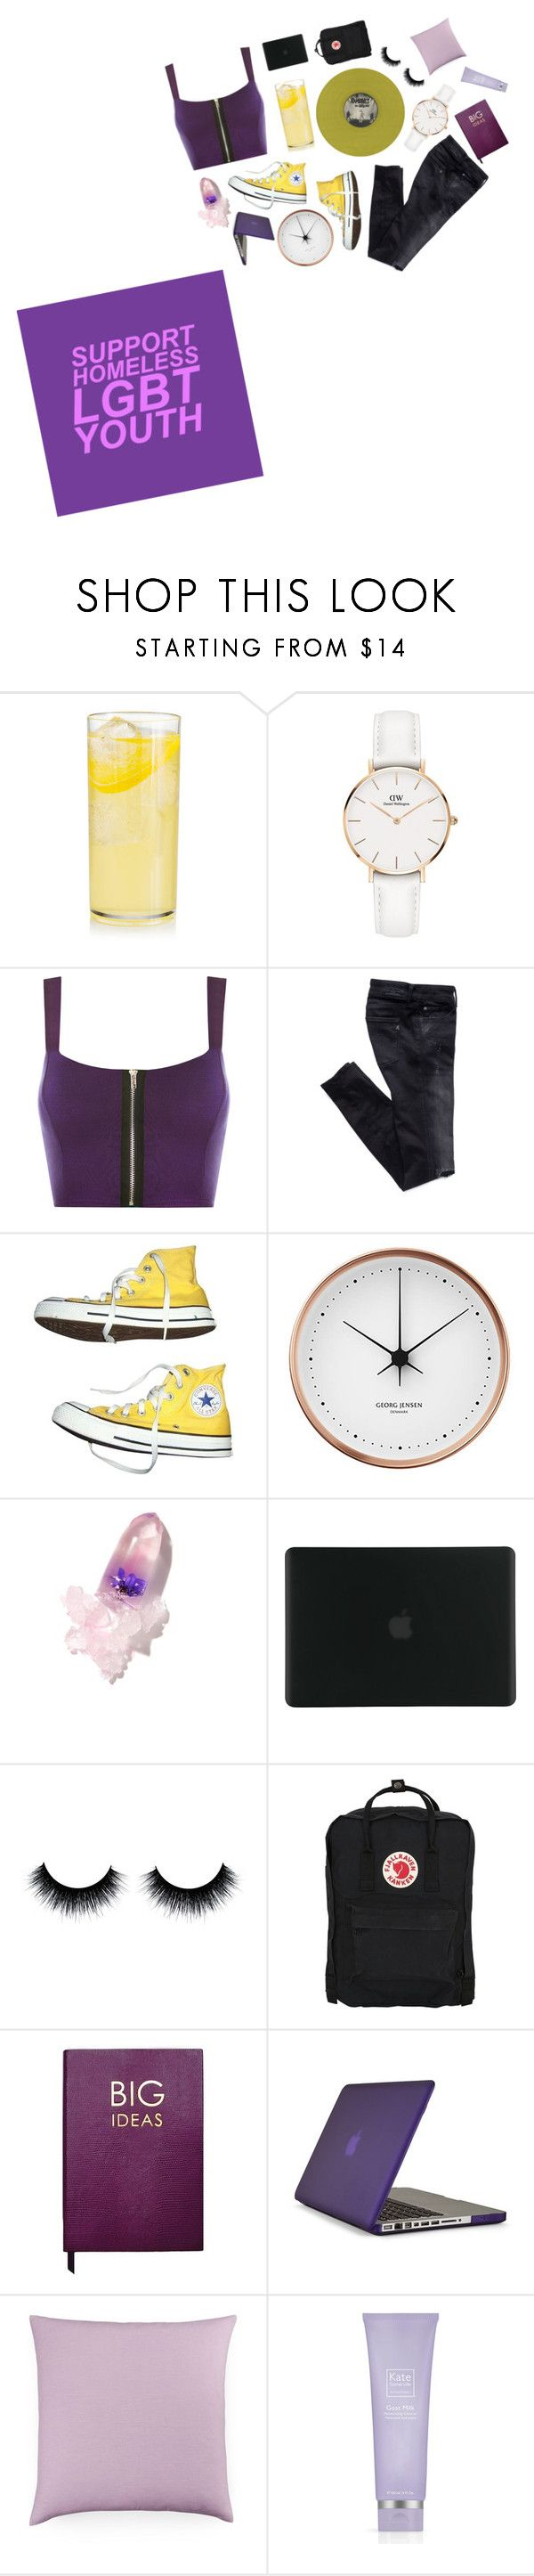 """""""[59]"""" by sparklelester ❤ liked on Polyvore featuring Daniel Wellington, WearAll, Converse, Georg Jensen, Winky Lux, Tucano, Fjällräven, Sloane Stationery, Speck and Bluebellgray"""